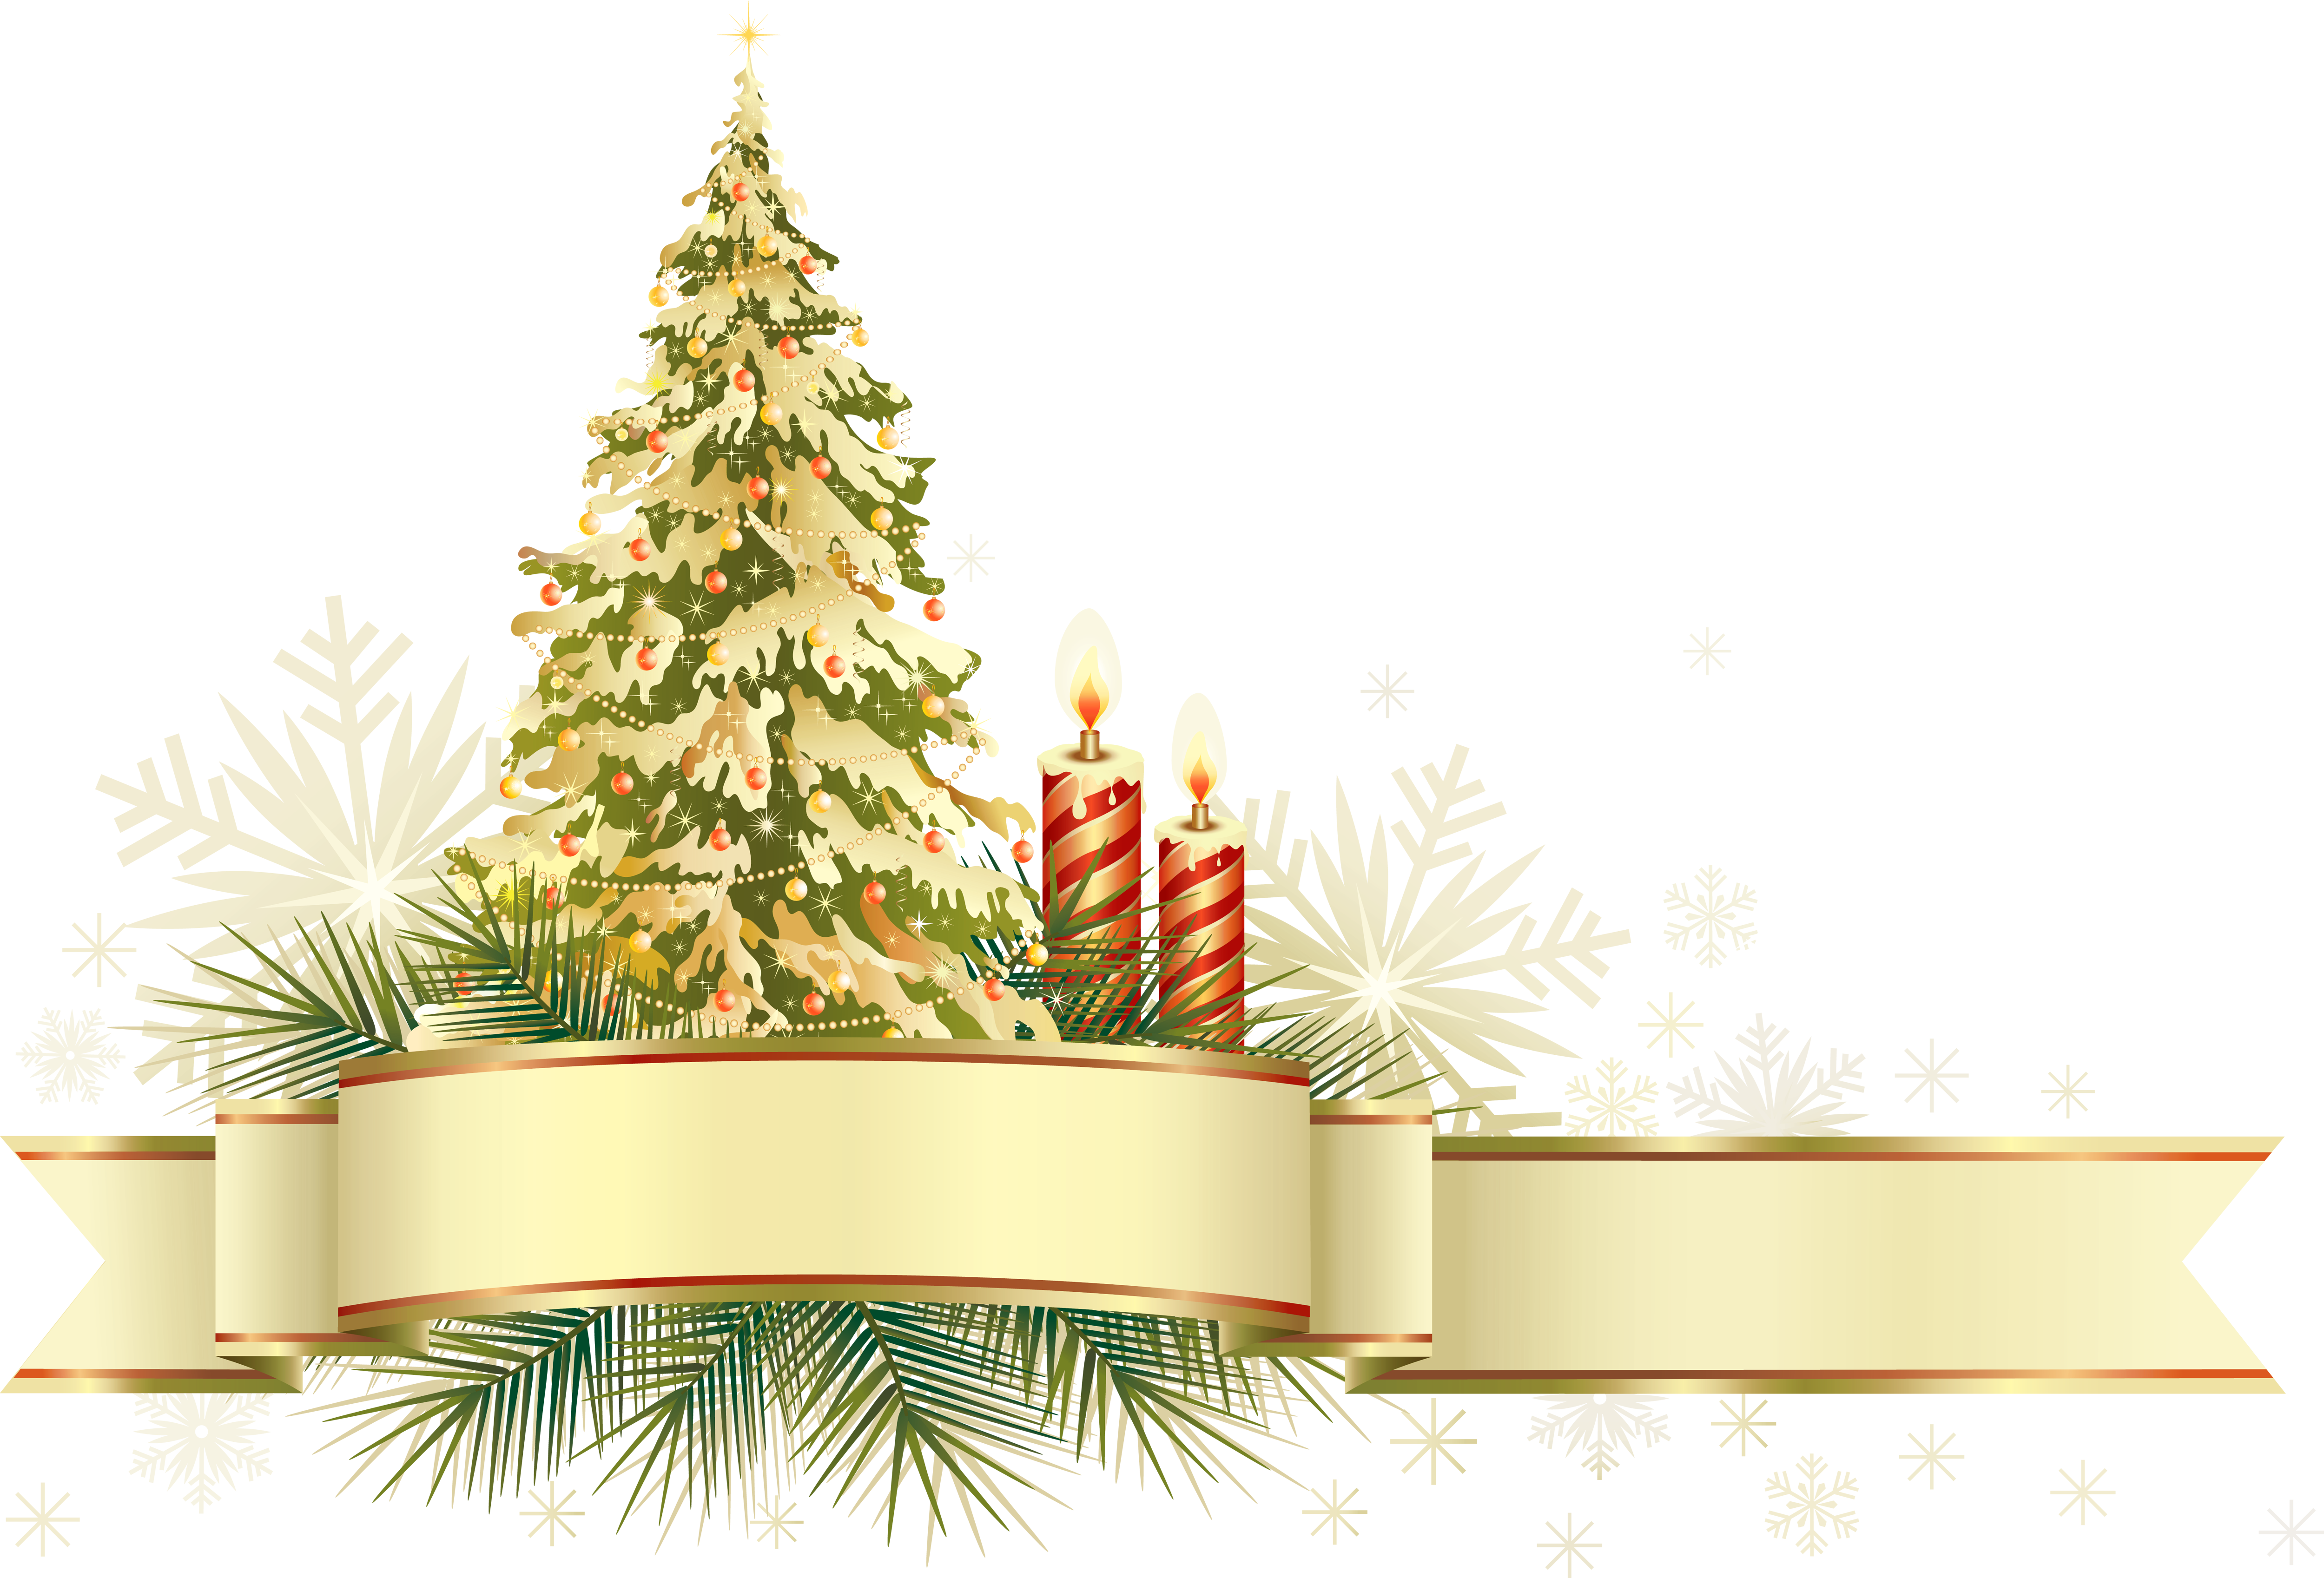 Xmas Images Free PNG Transparent Xmas Images.PNG Images..